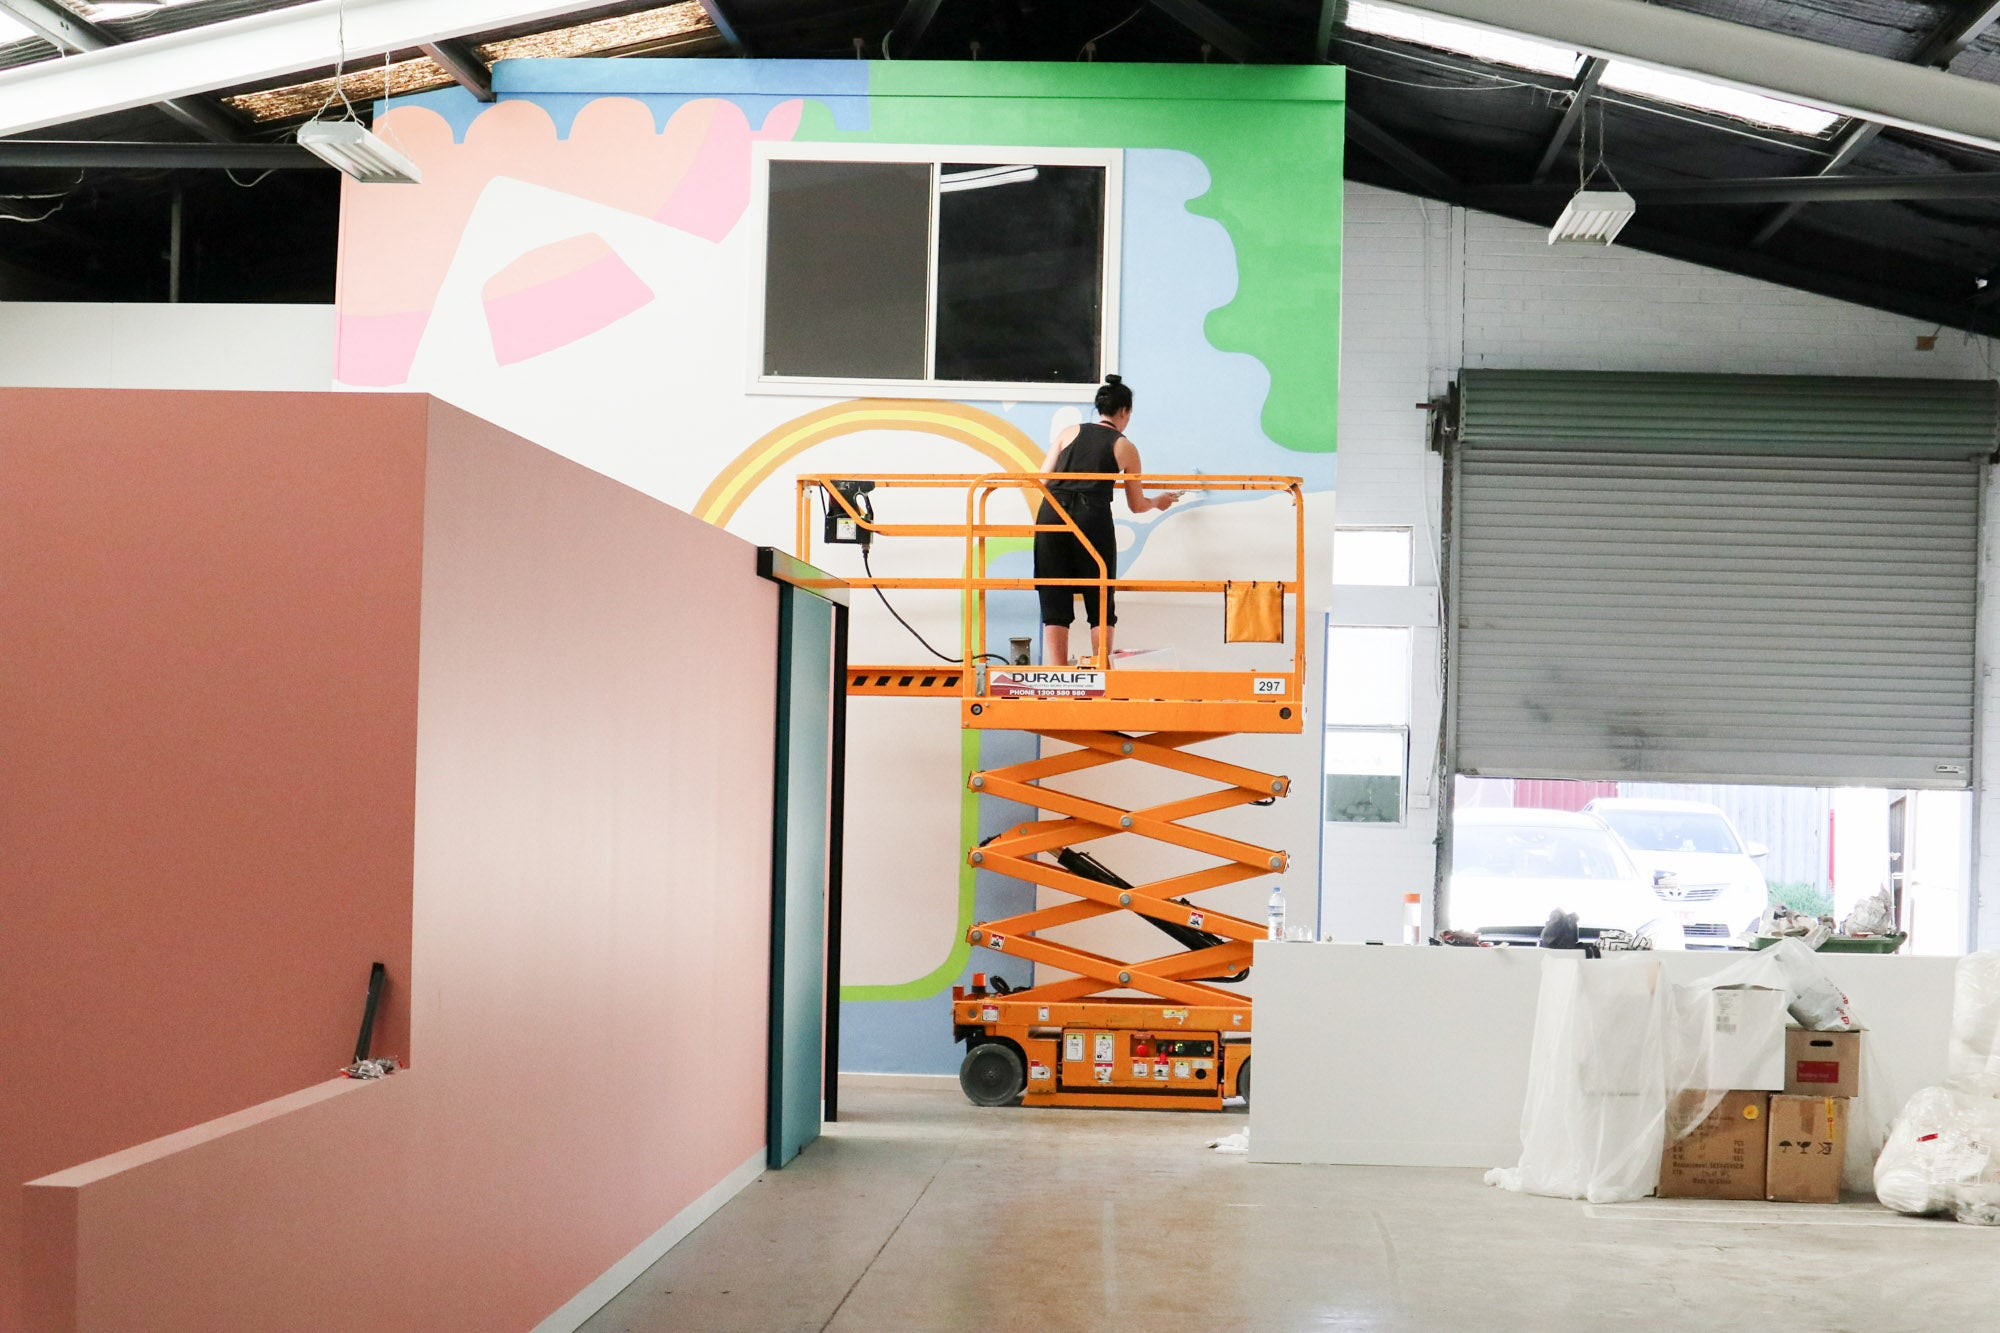 Deb McNaughton Artist - working on Massive wall mural - painting on forklift - Zudis -  Melbourne